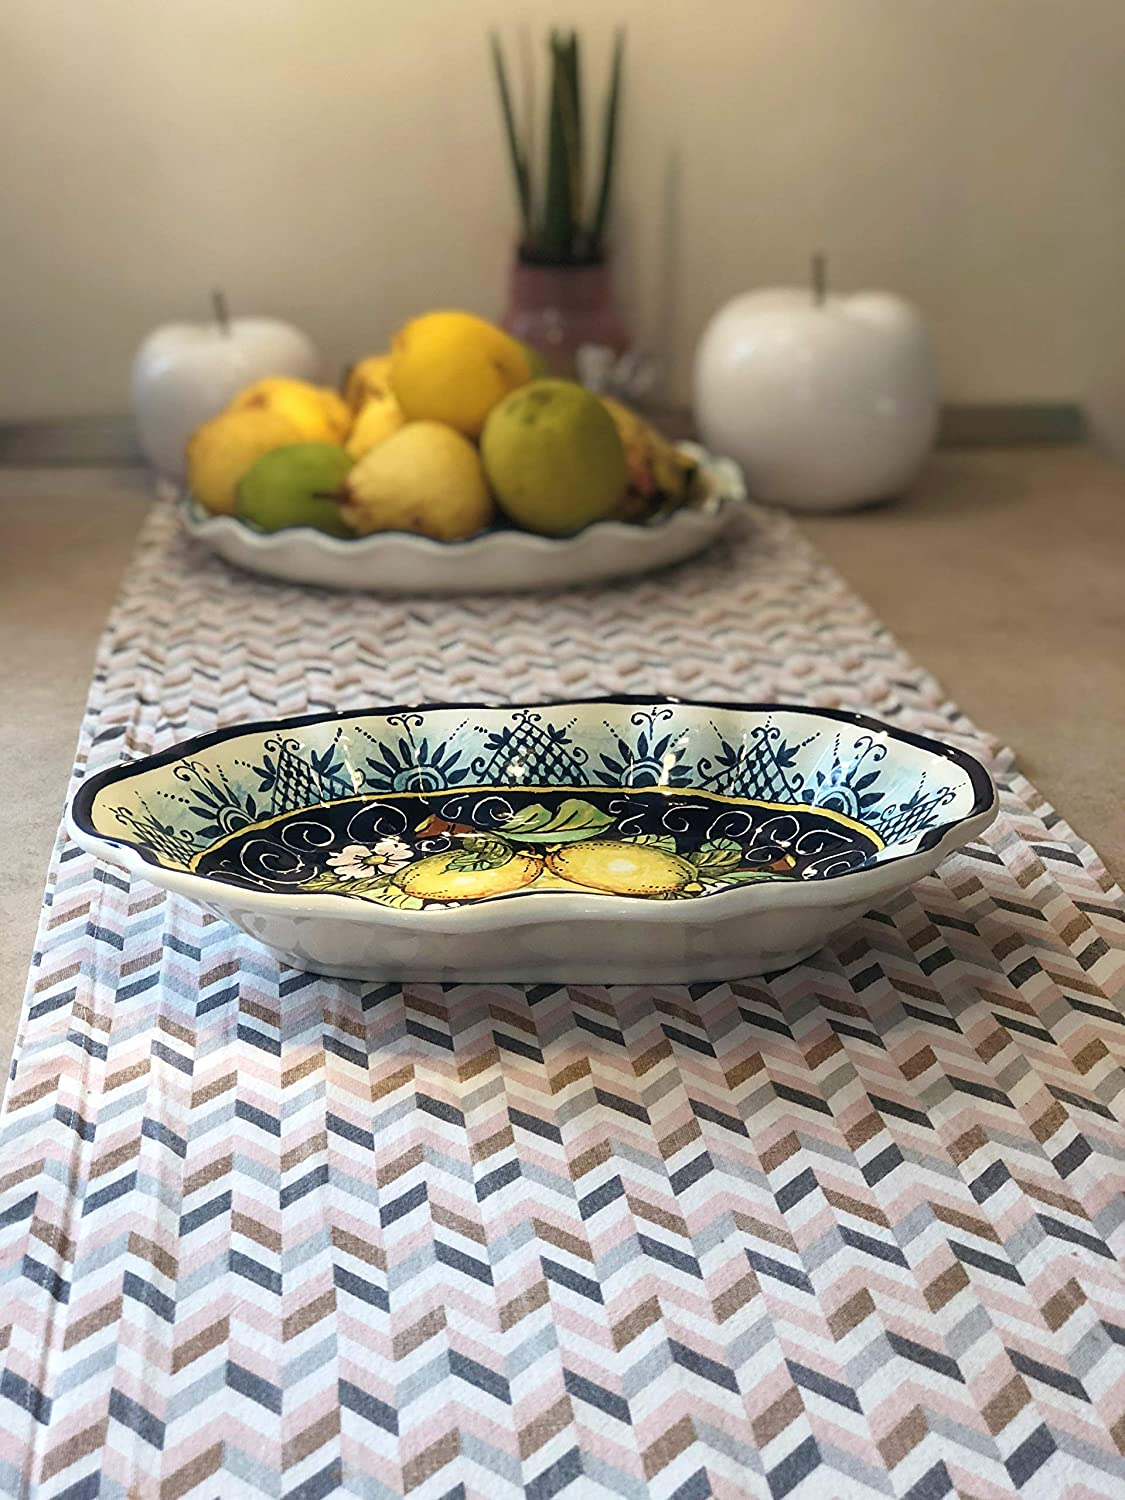 CERAMICHE D'ARTE PARRINI - Italian Ceramic Art Pottery Serving Bowl Centerpieces Tray Plate Hand Painted Decorative Lemons Made in ITALY Tuscan